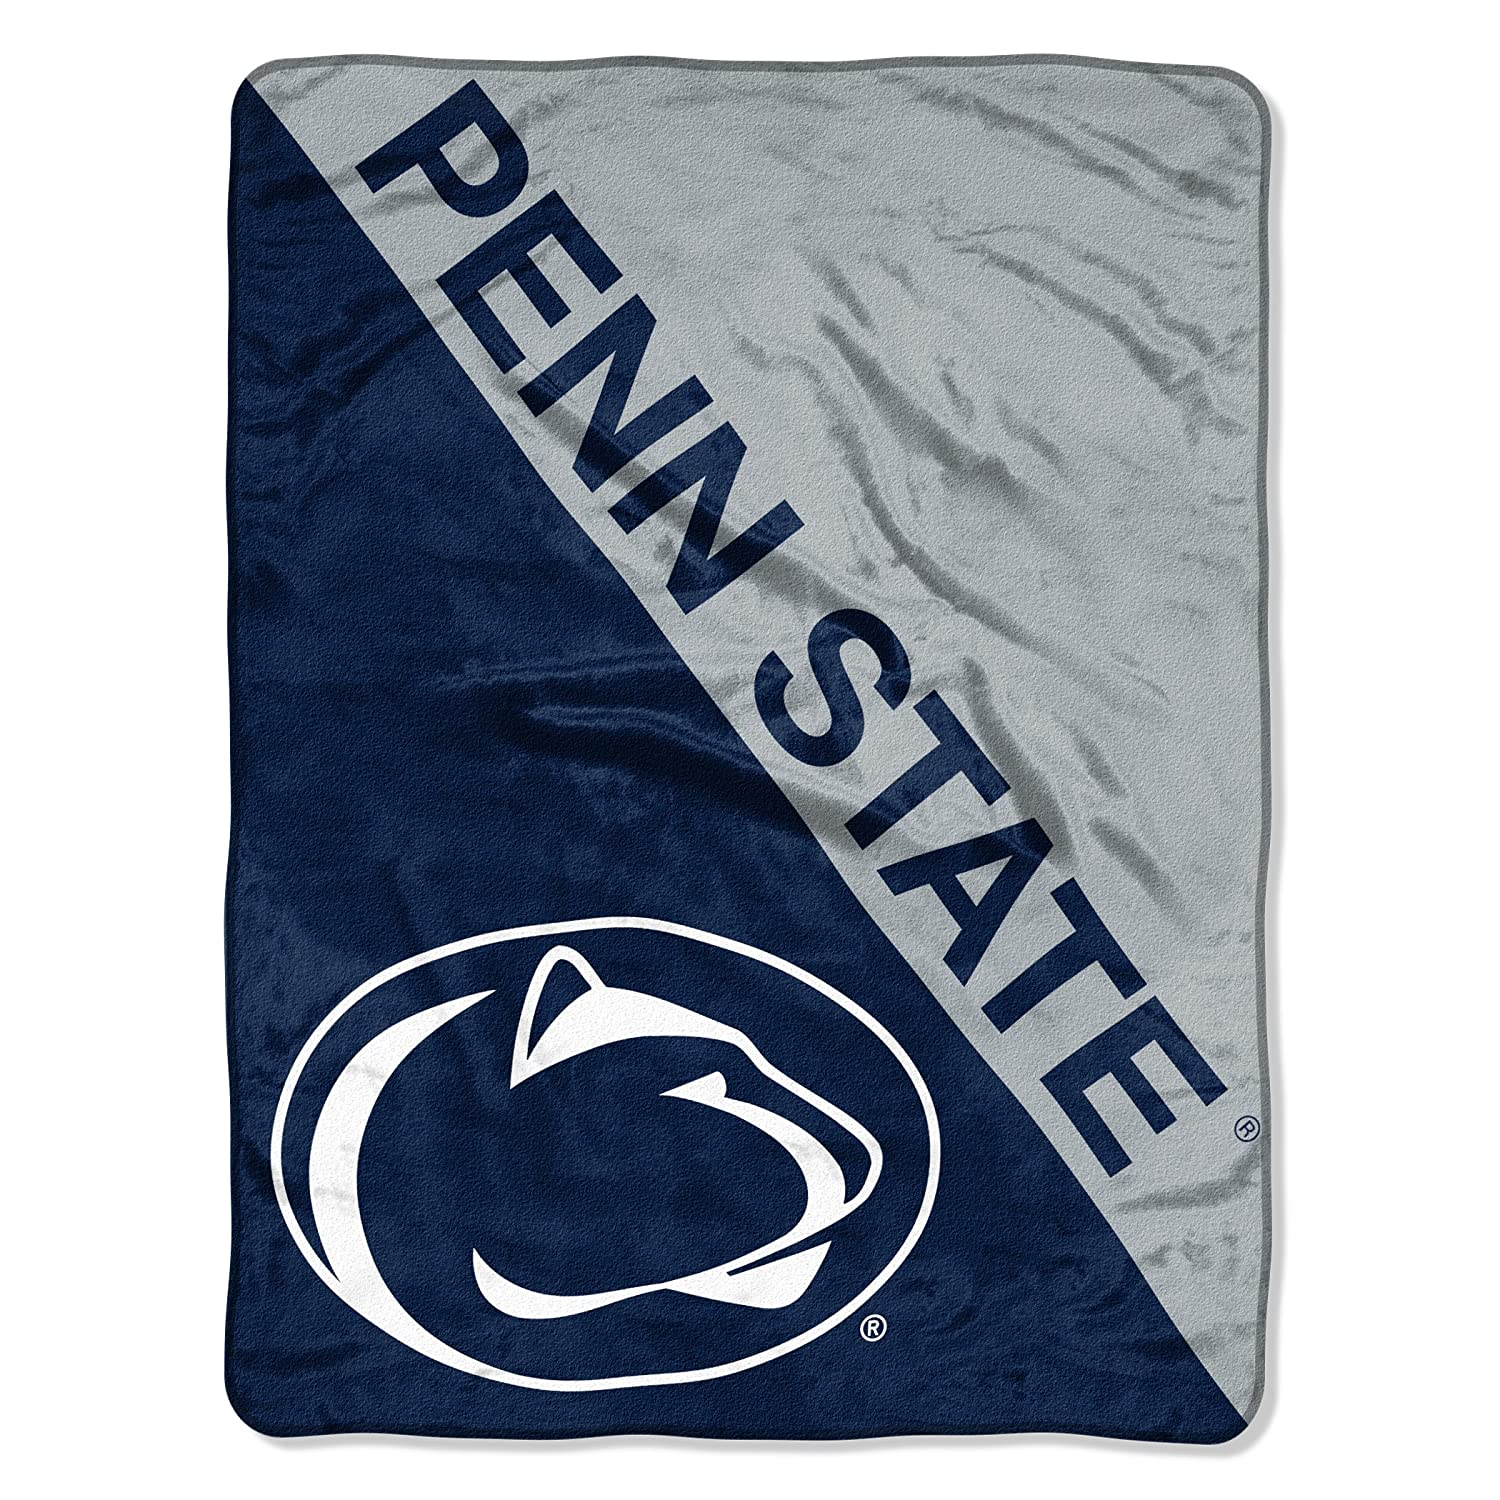 The Northwest Company Officially Licensed NCAA Halftone Micro Raschel Throw Blanket 46 x 60